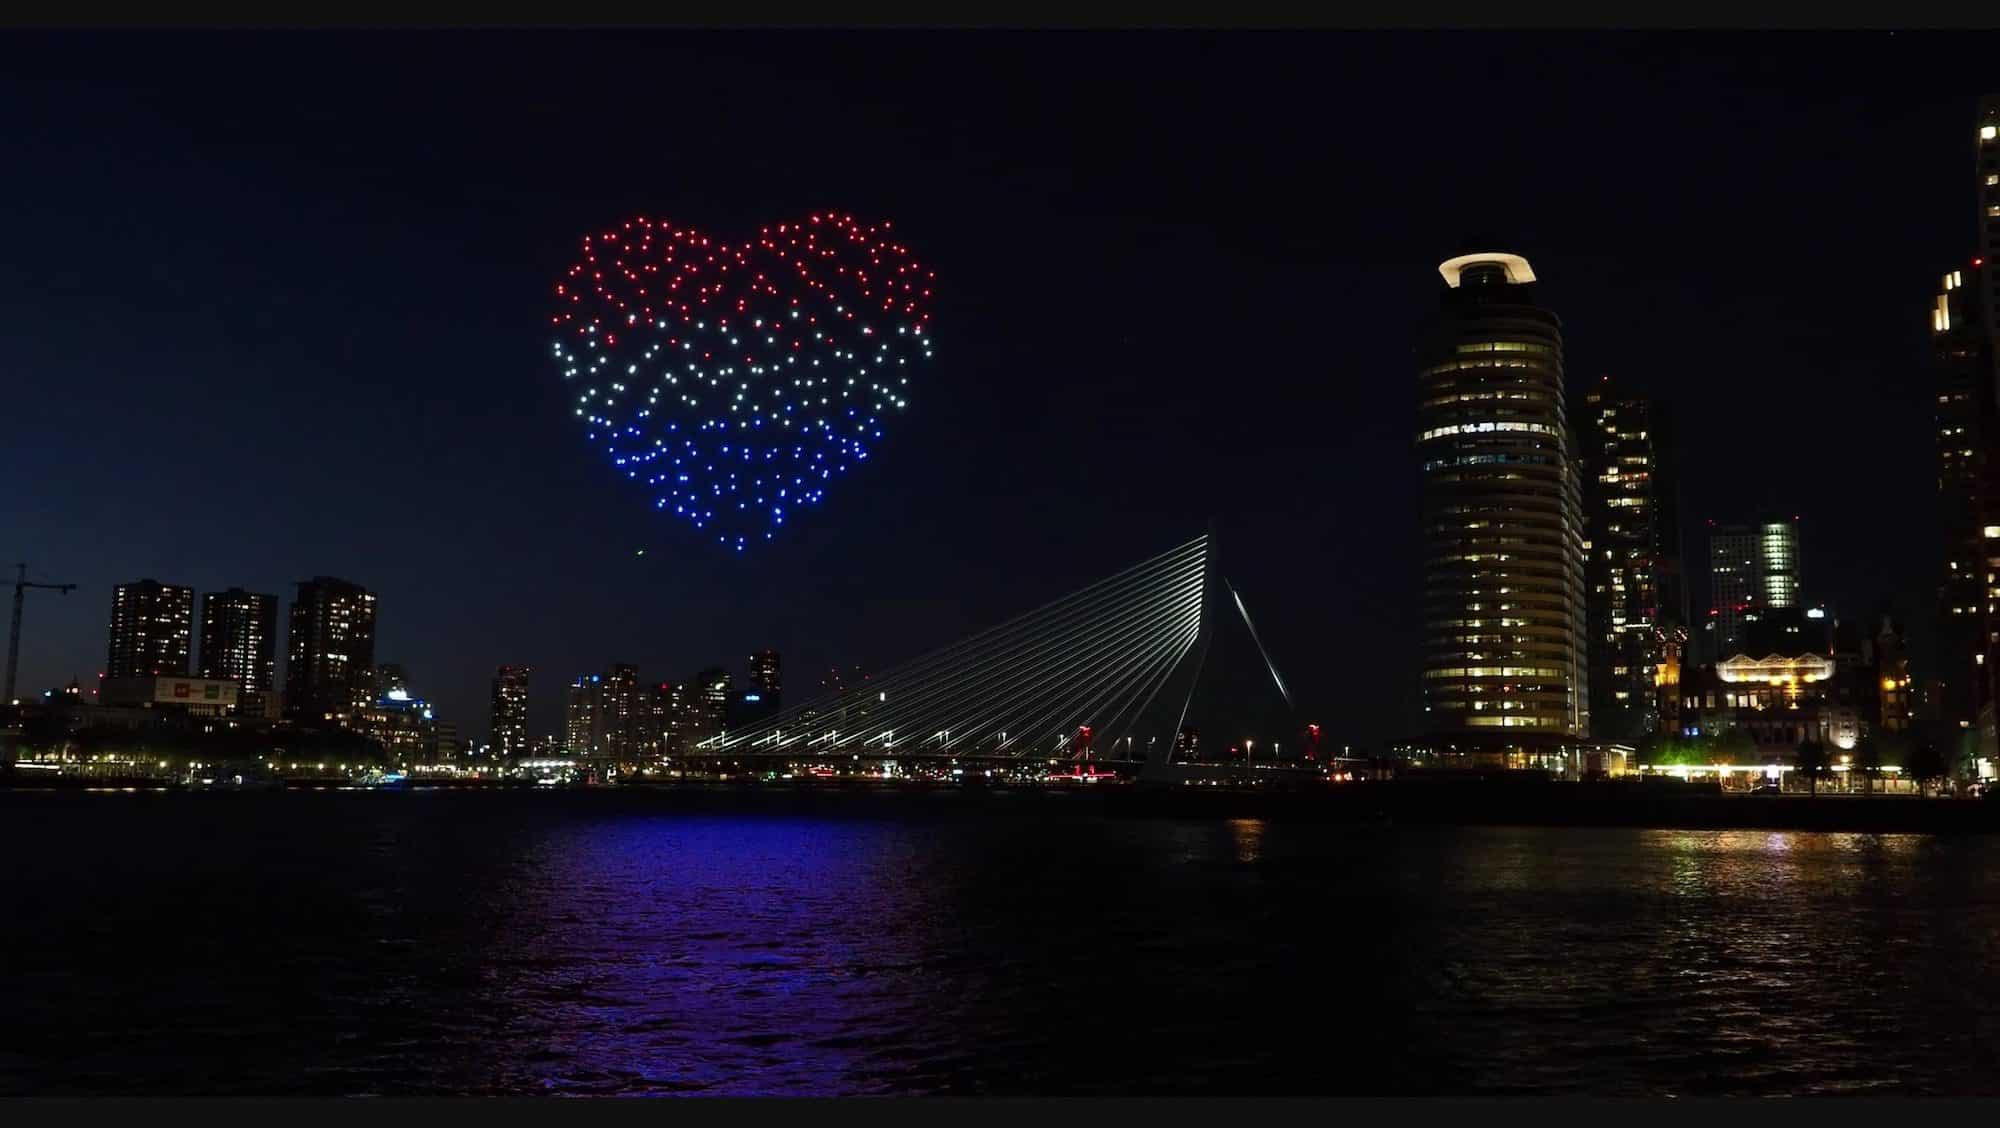 Beating Heart drone show over Rotterdam as a flying tribute to freedom and appreciation